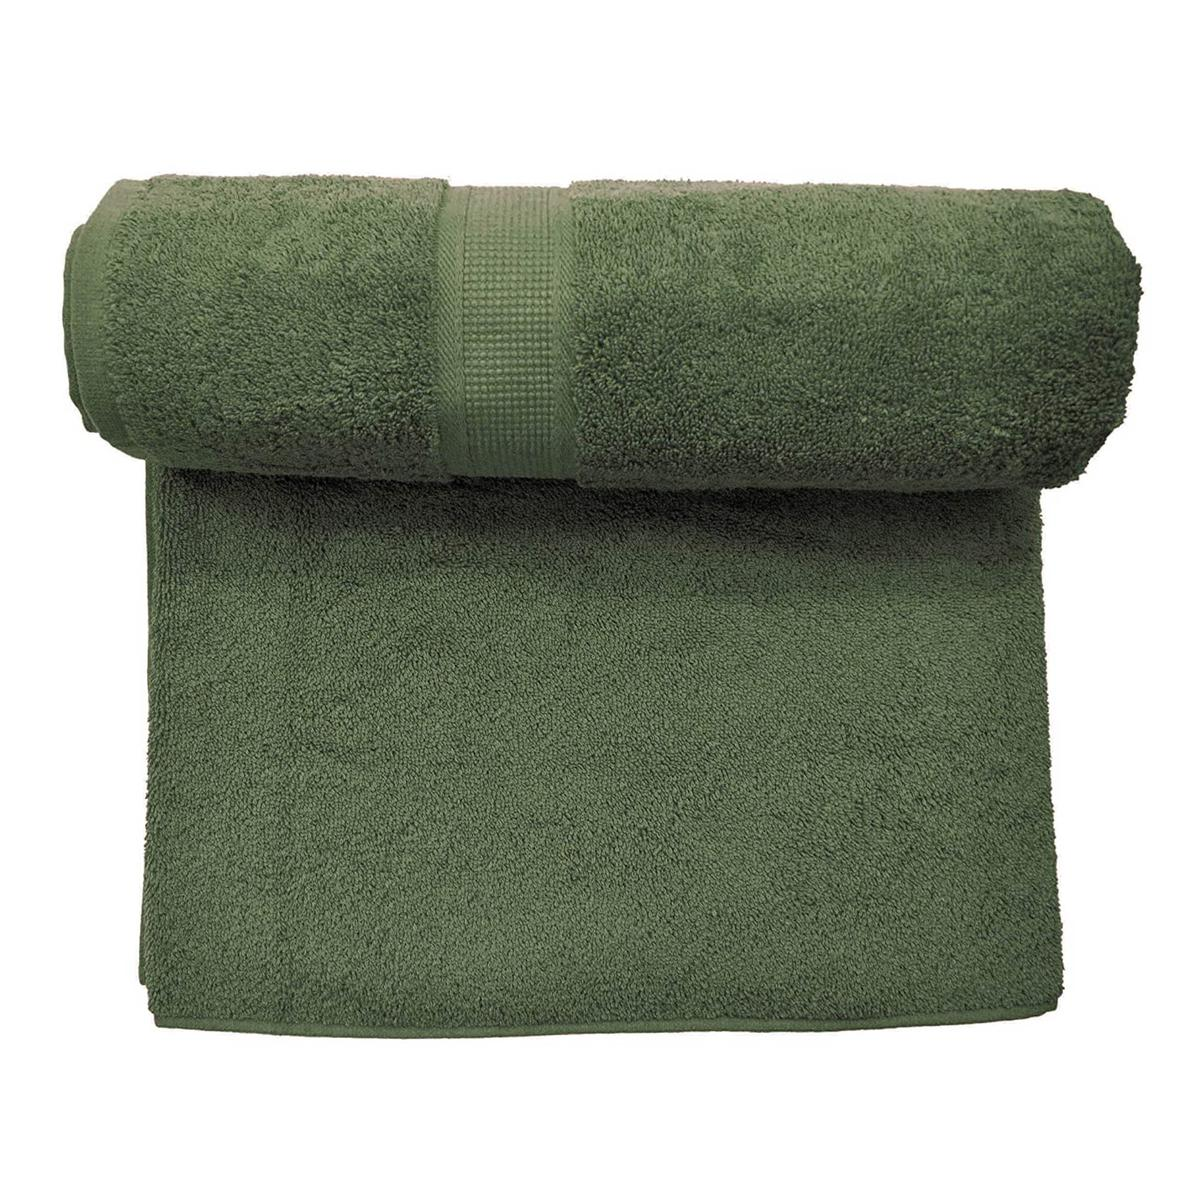 Bombay Dyeing Santino Pre Dyed 550 GSM Cotton Towel - Green